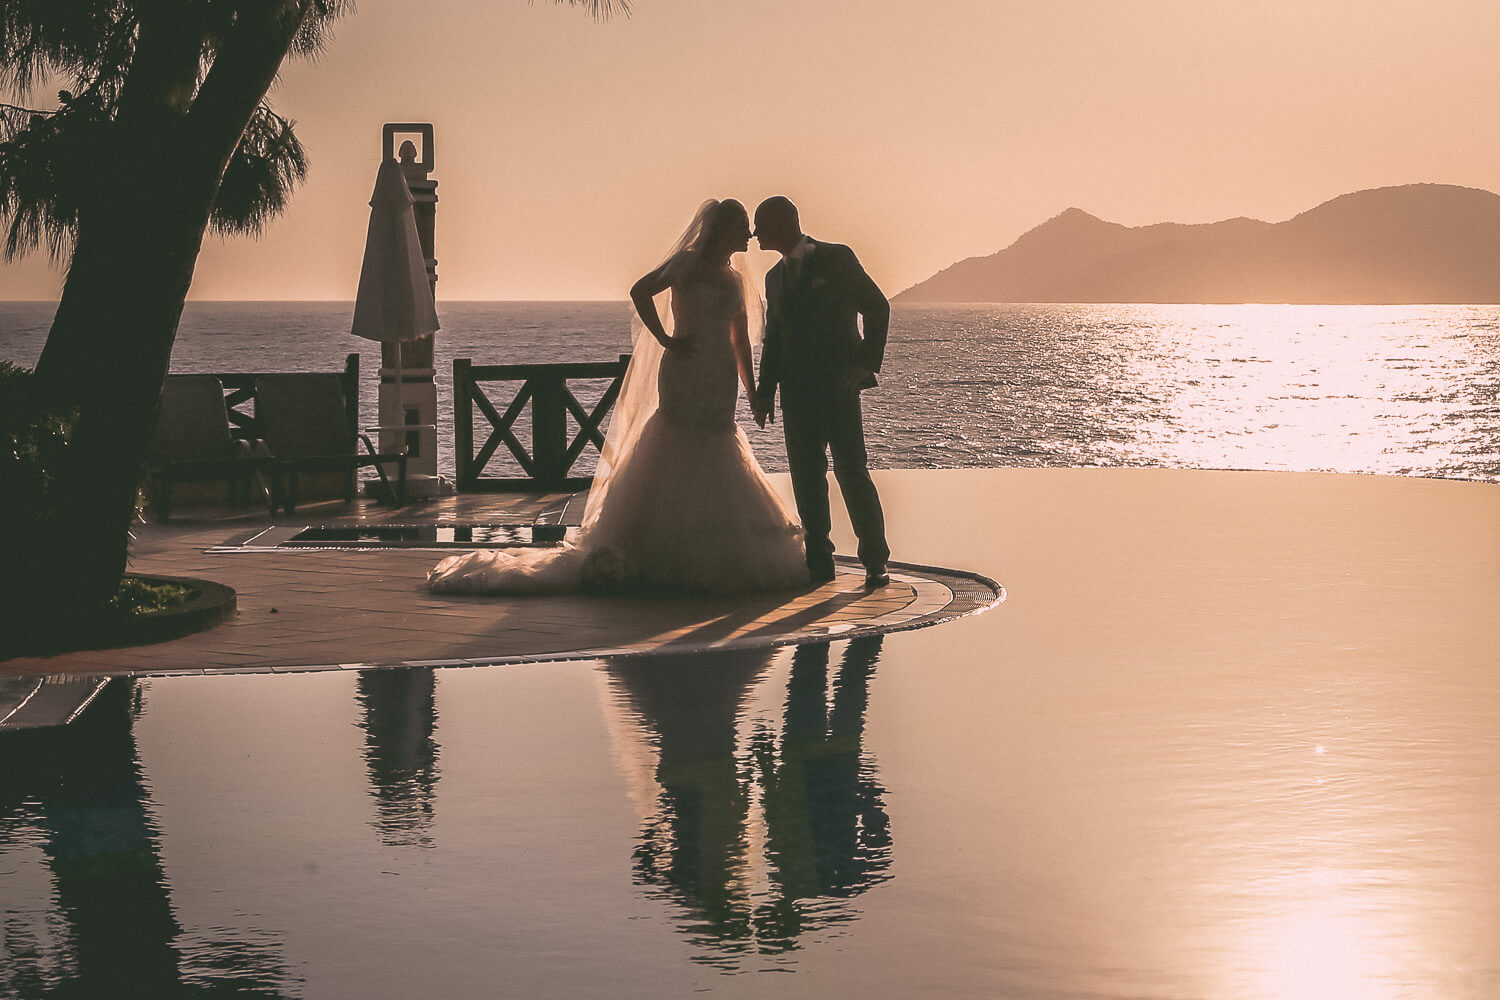 beautiful sunset picture of bride and groom Liberty Lykia hotels Olu Deniz Turkey. Amazing wedding destination in Europe